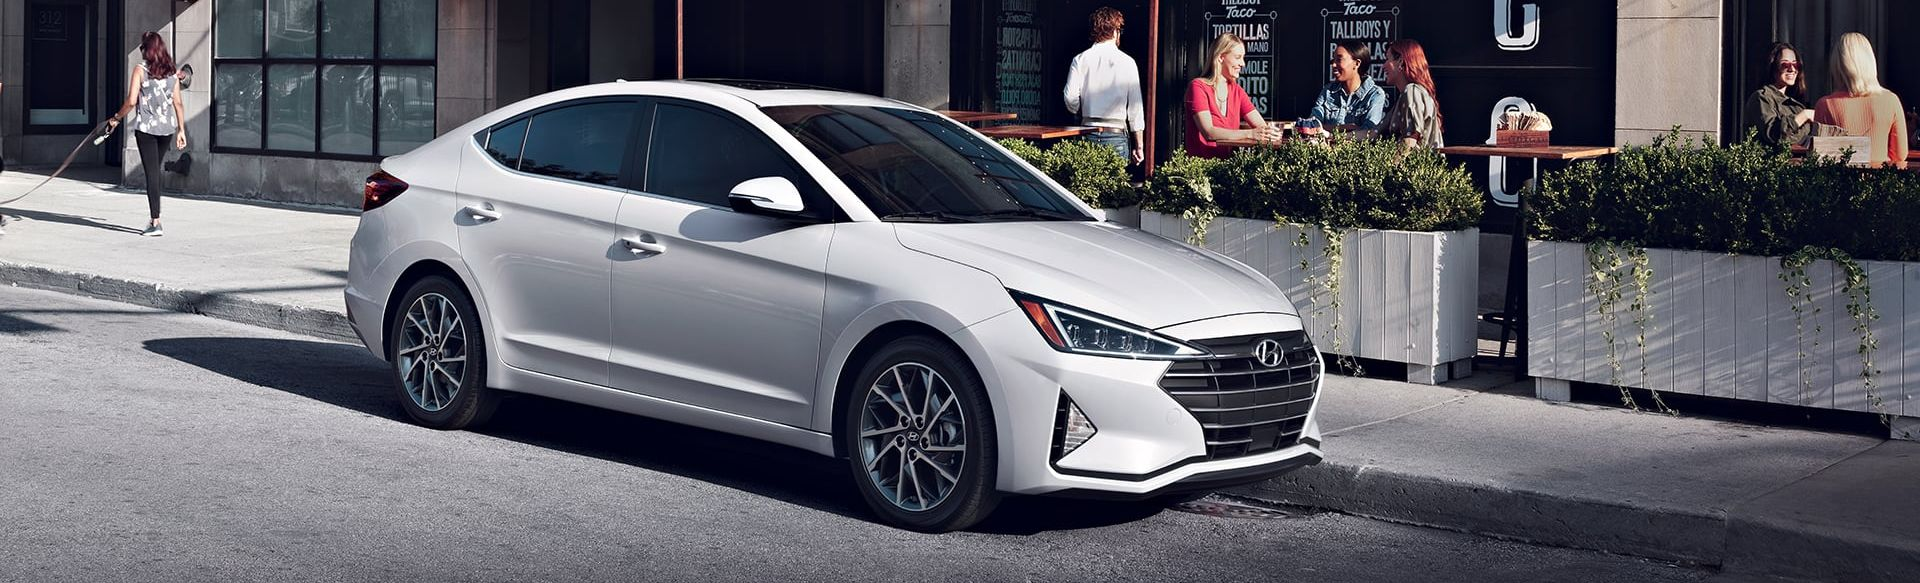 2019 Hyundai Elantra Leasing near Washington, DC